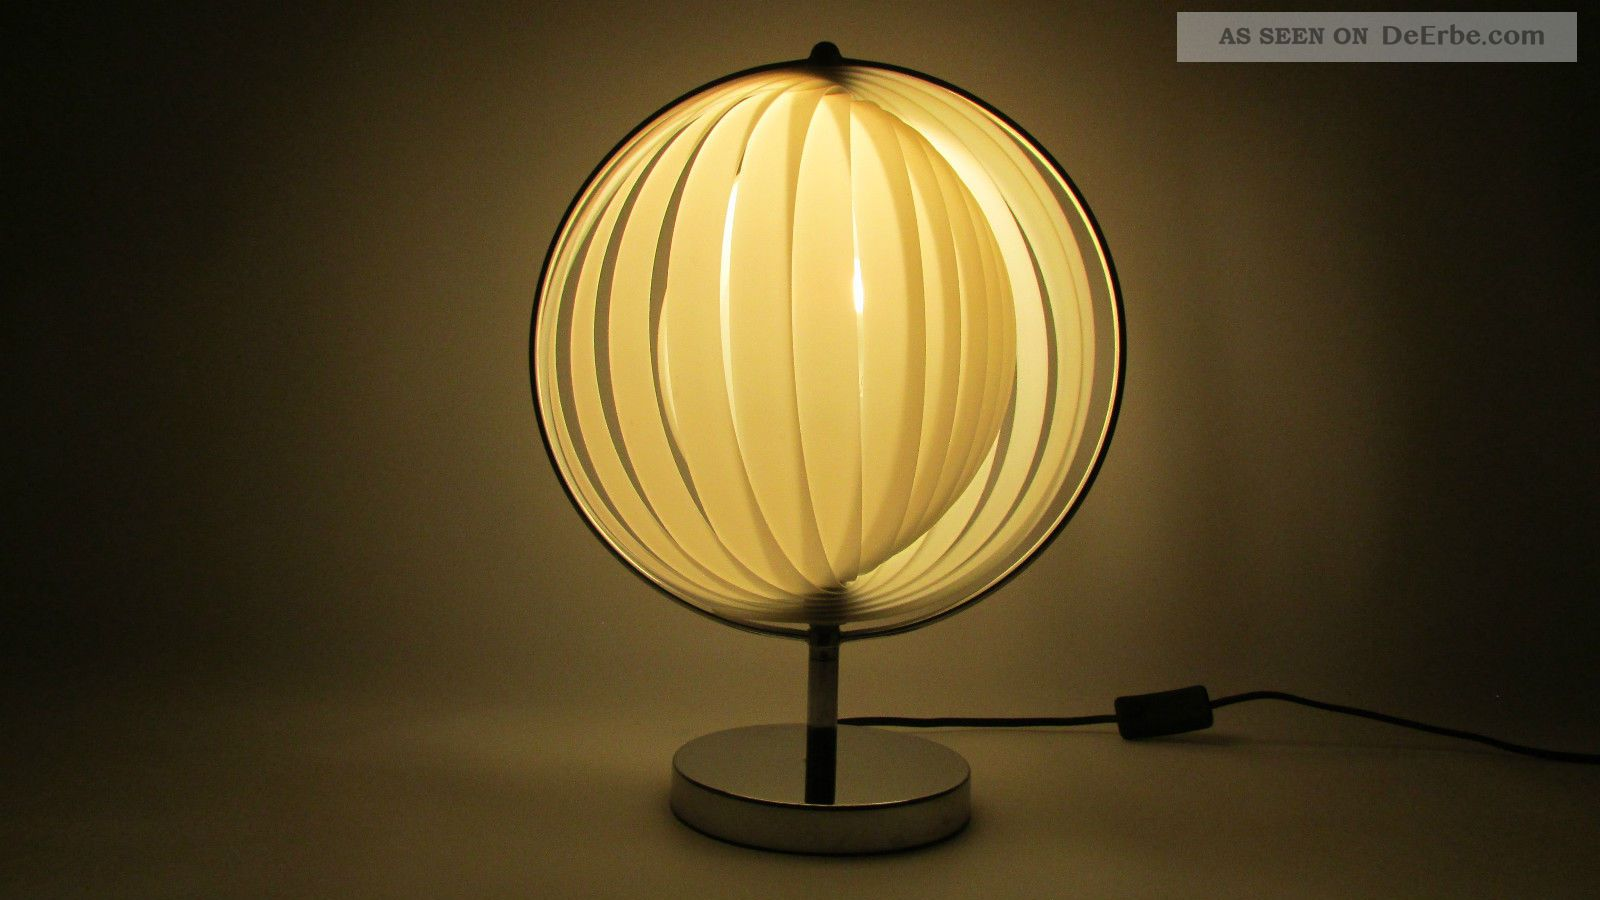 70 jahre dom christian koban designlampe moon shape lamp space age mond lampe. Black Bedroom Furniture Sets. Home Design Ideas